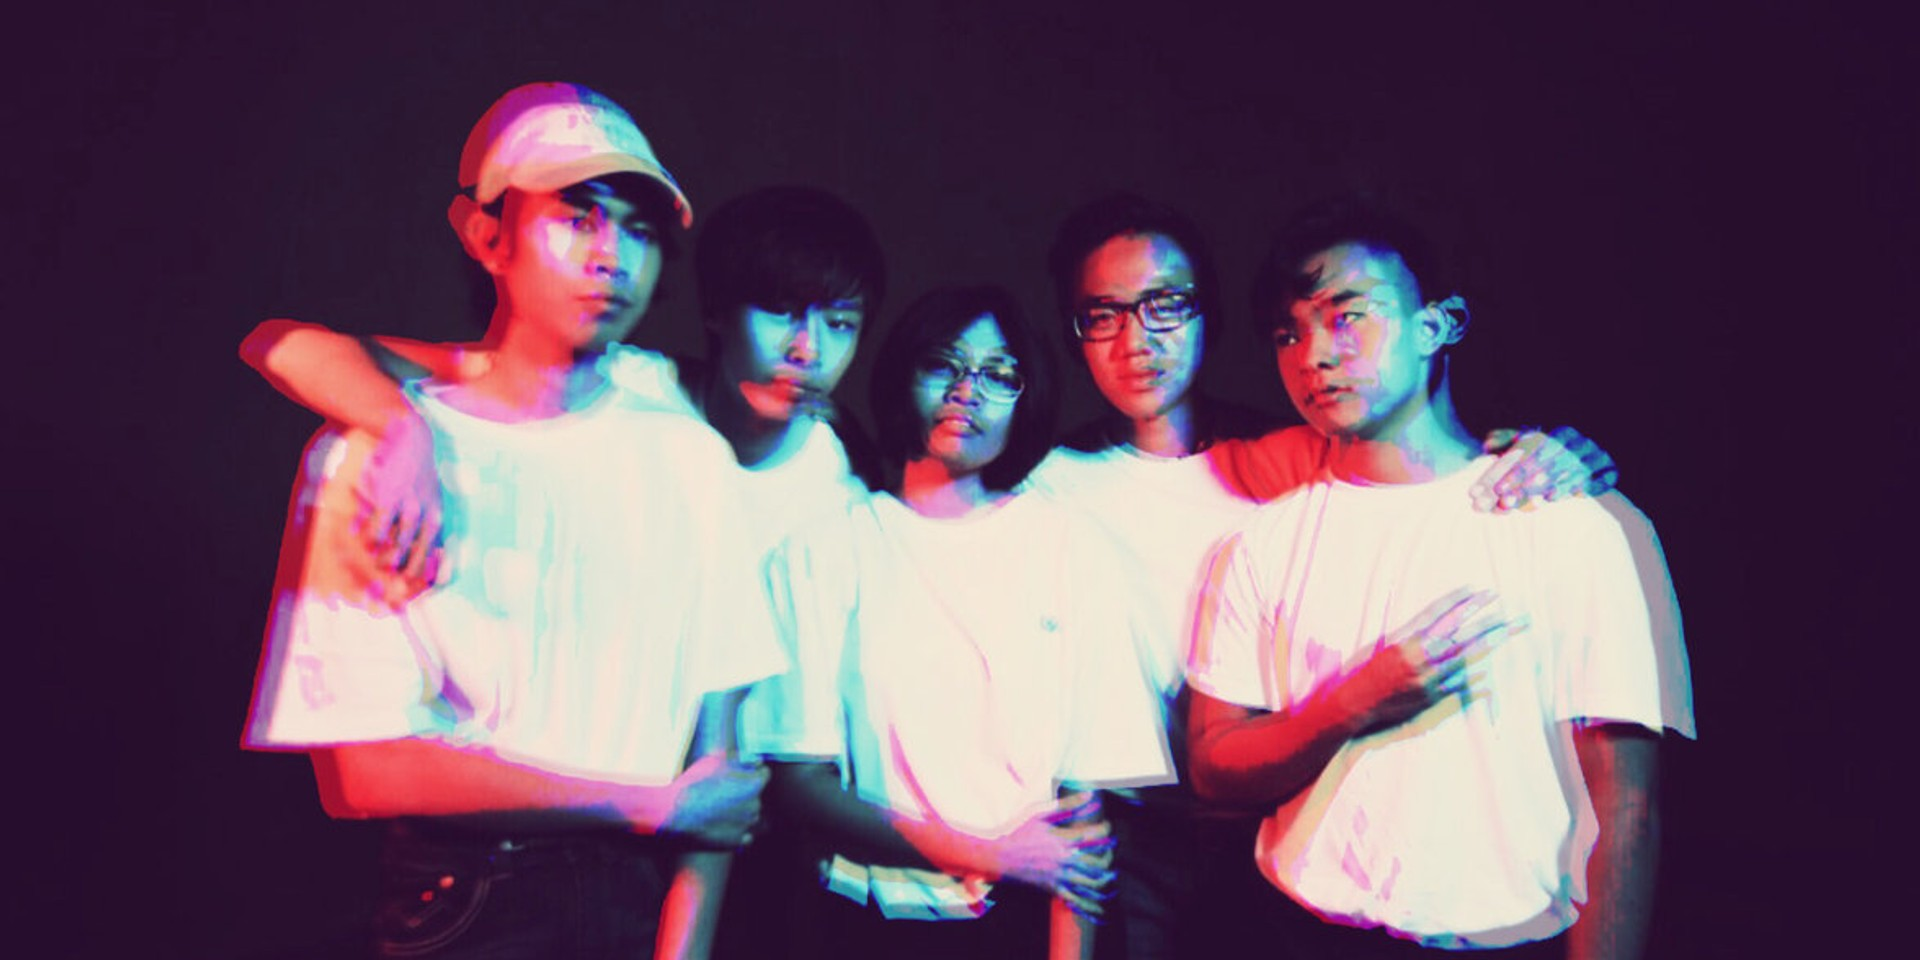 LISTEN: Subsonic Eye drowns weariness with reverb in 'Cosmic Realignment'